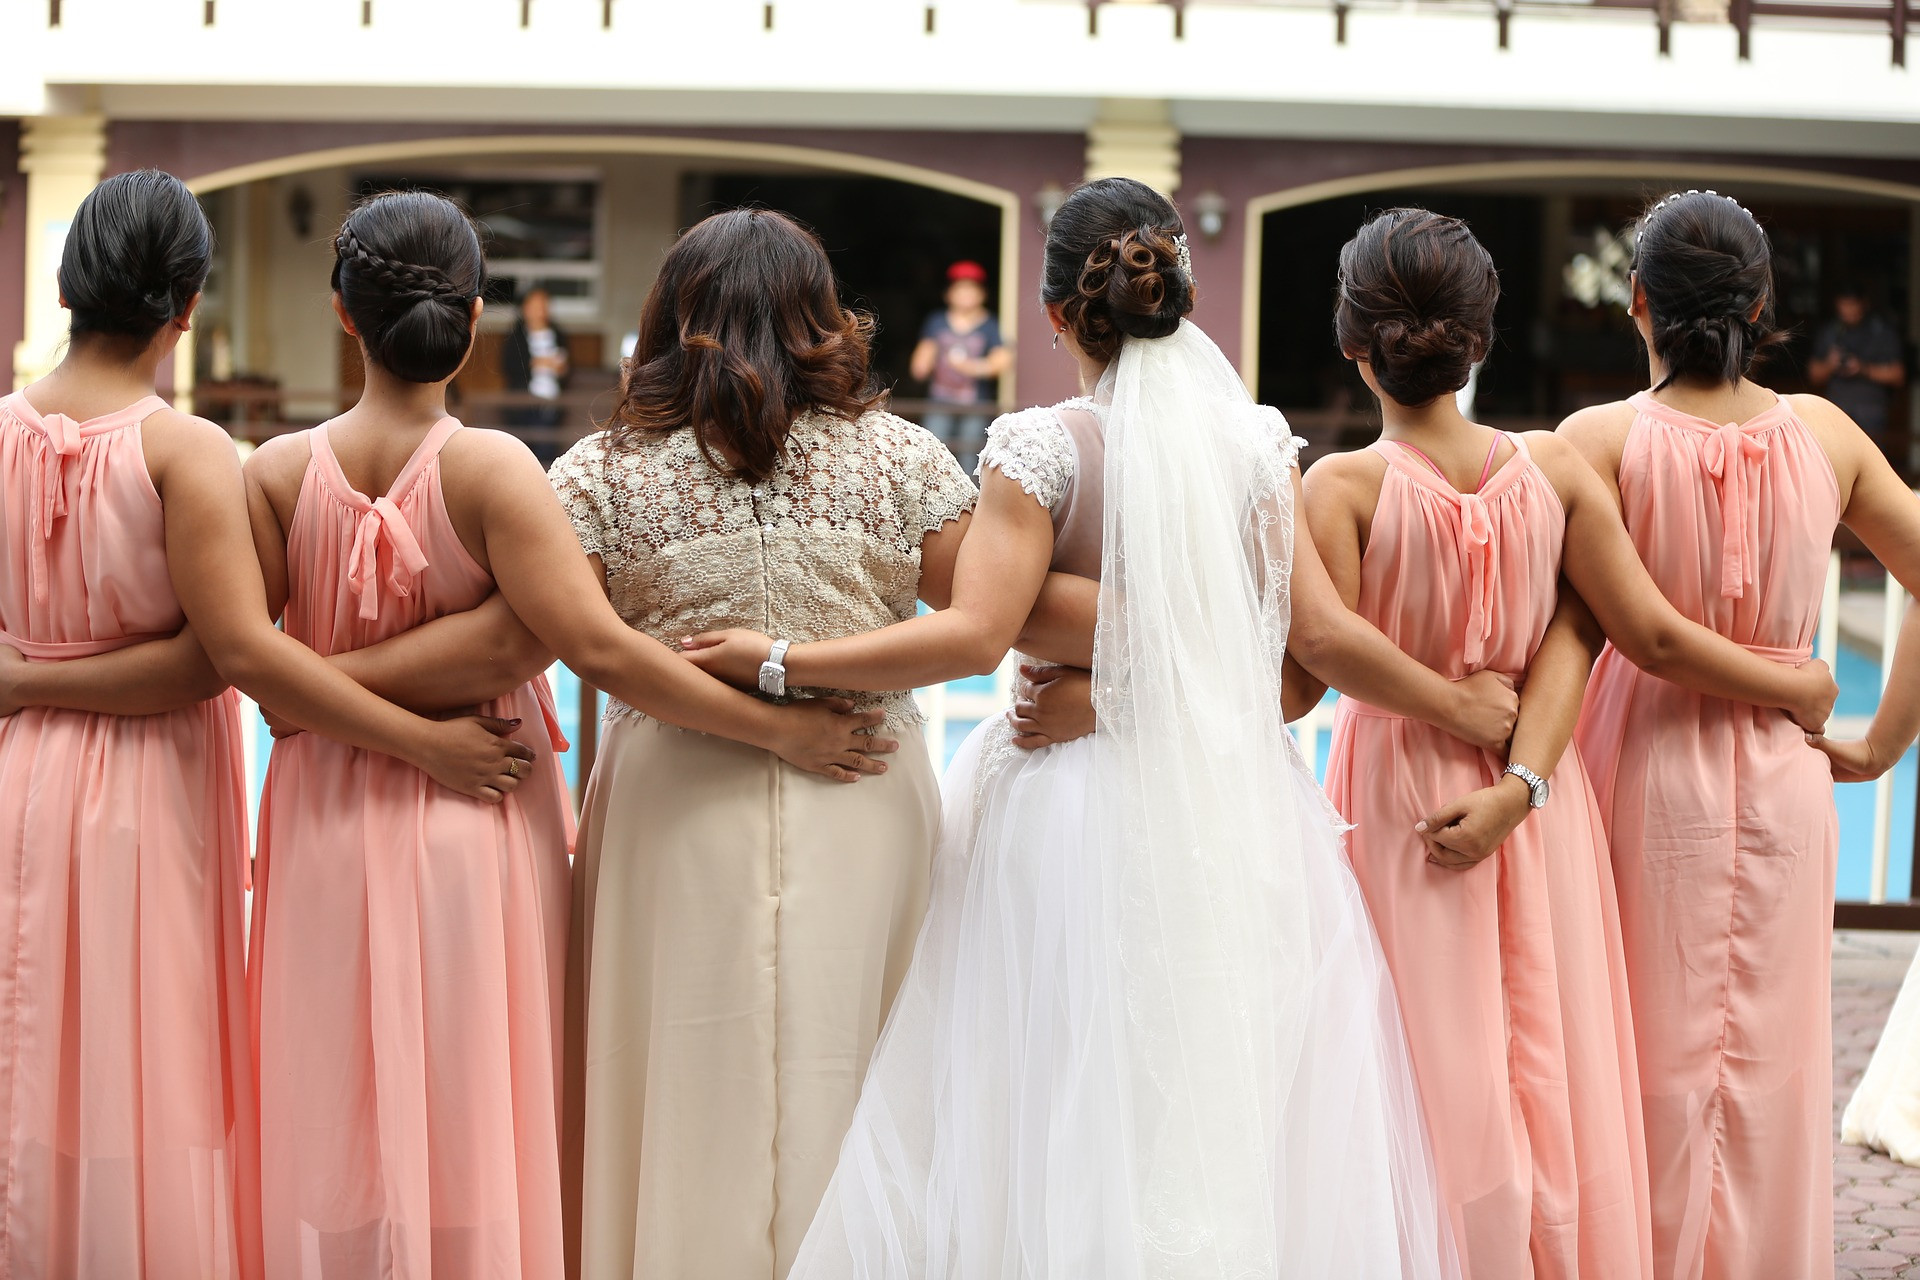 Wedding Gown and Bridal Party Fittings